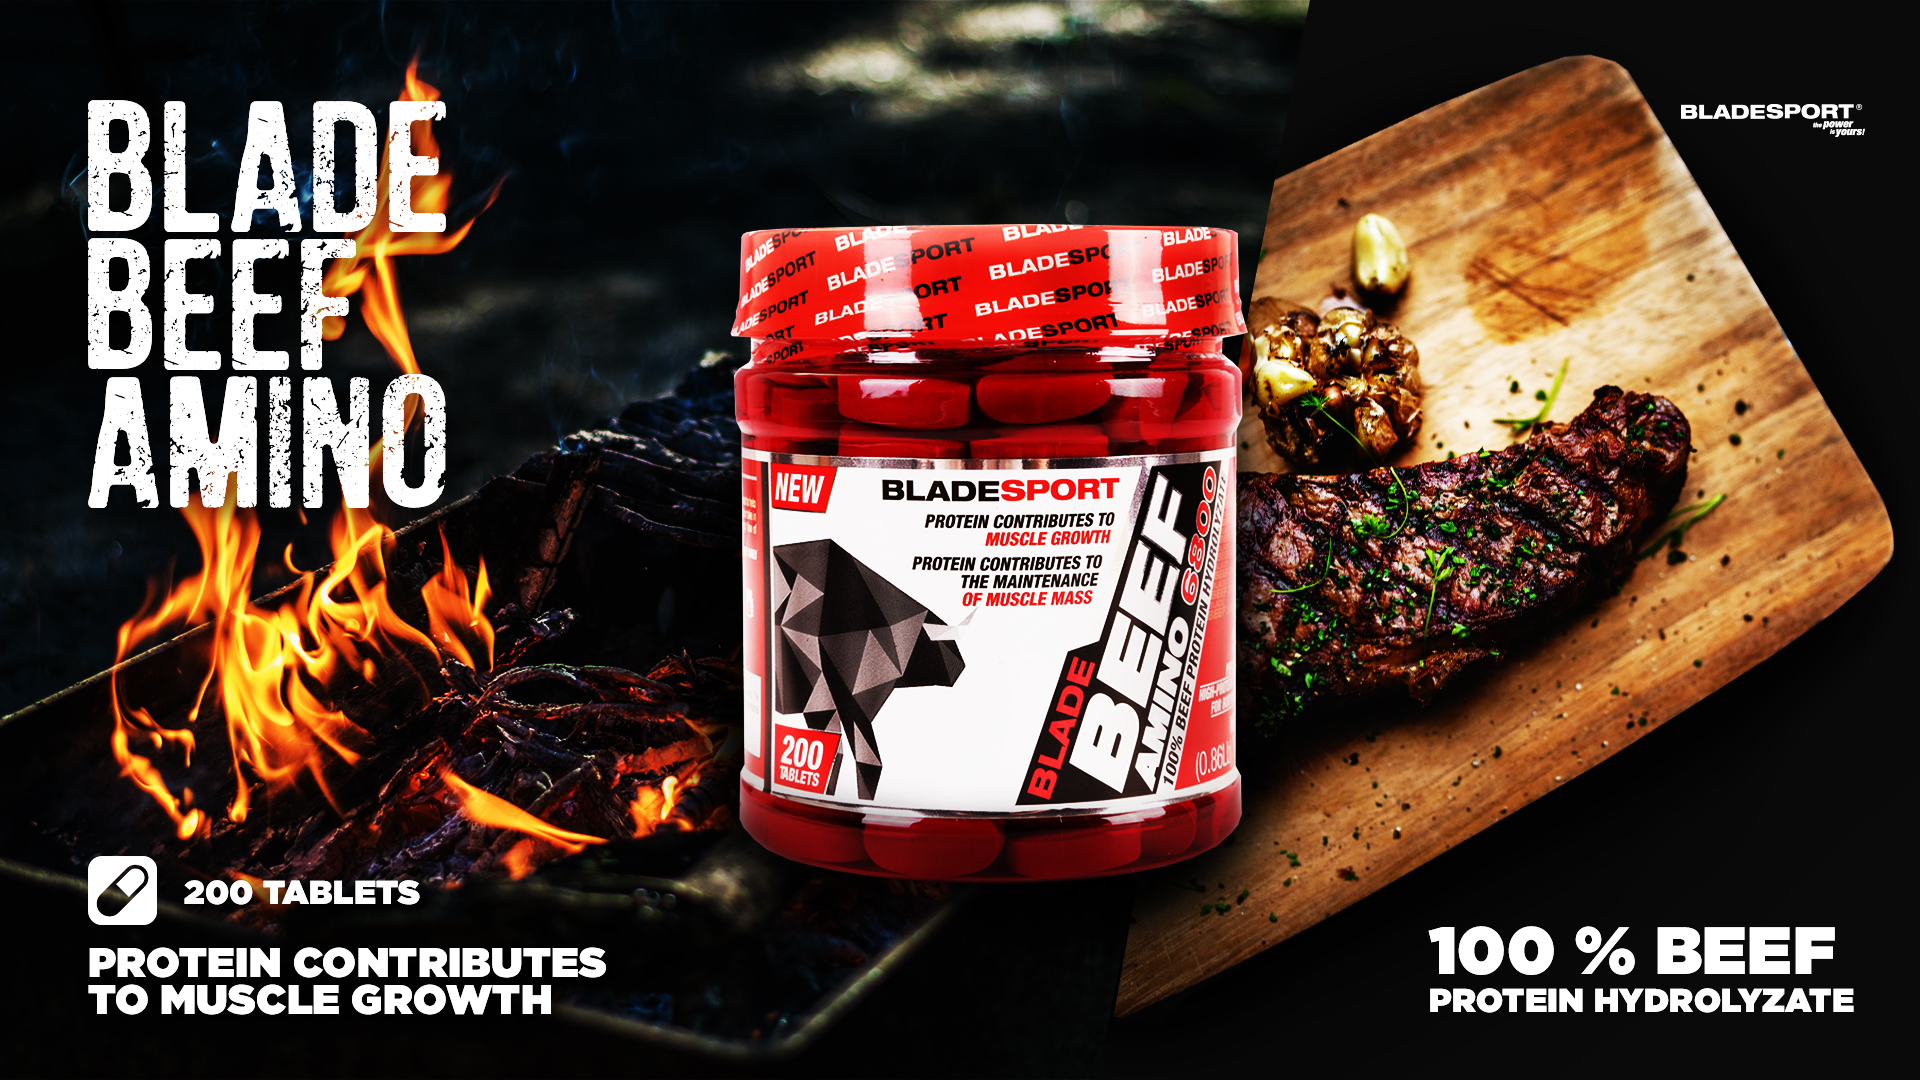 Blade sport Beef Amino